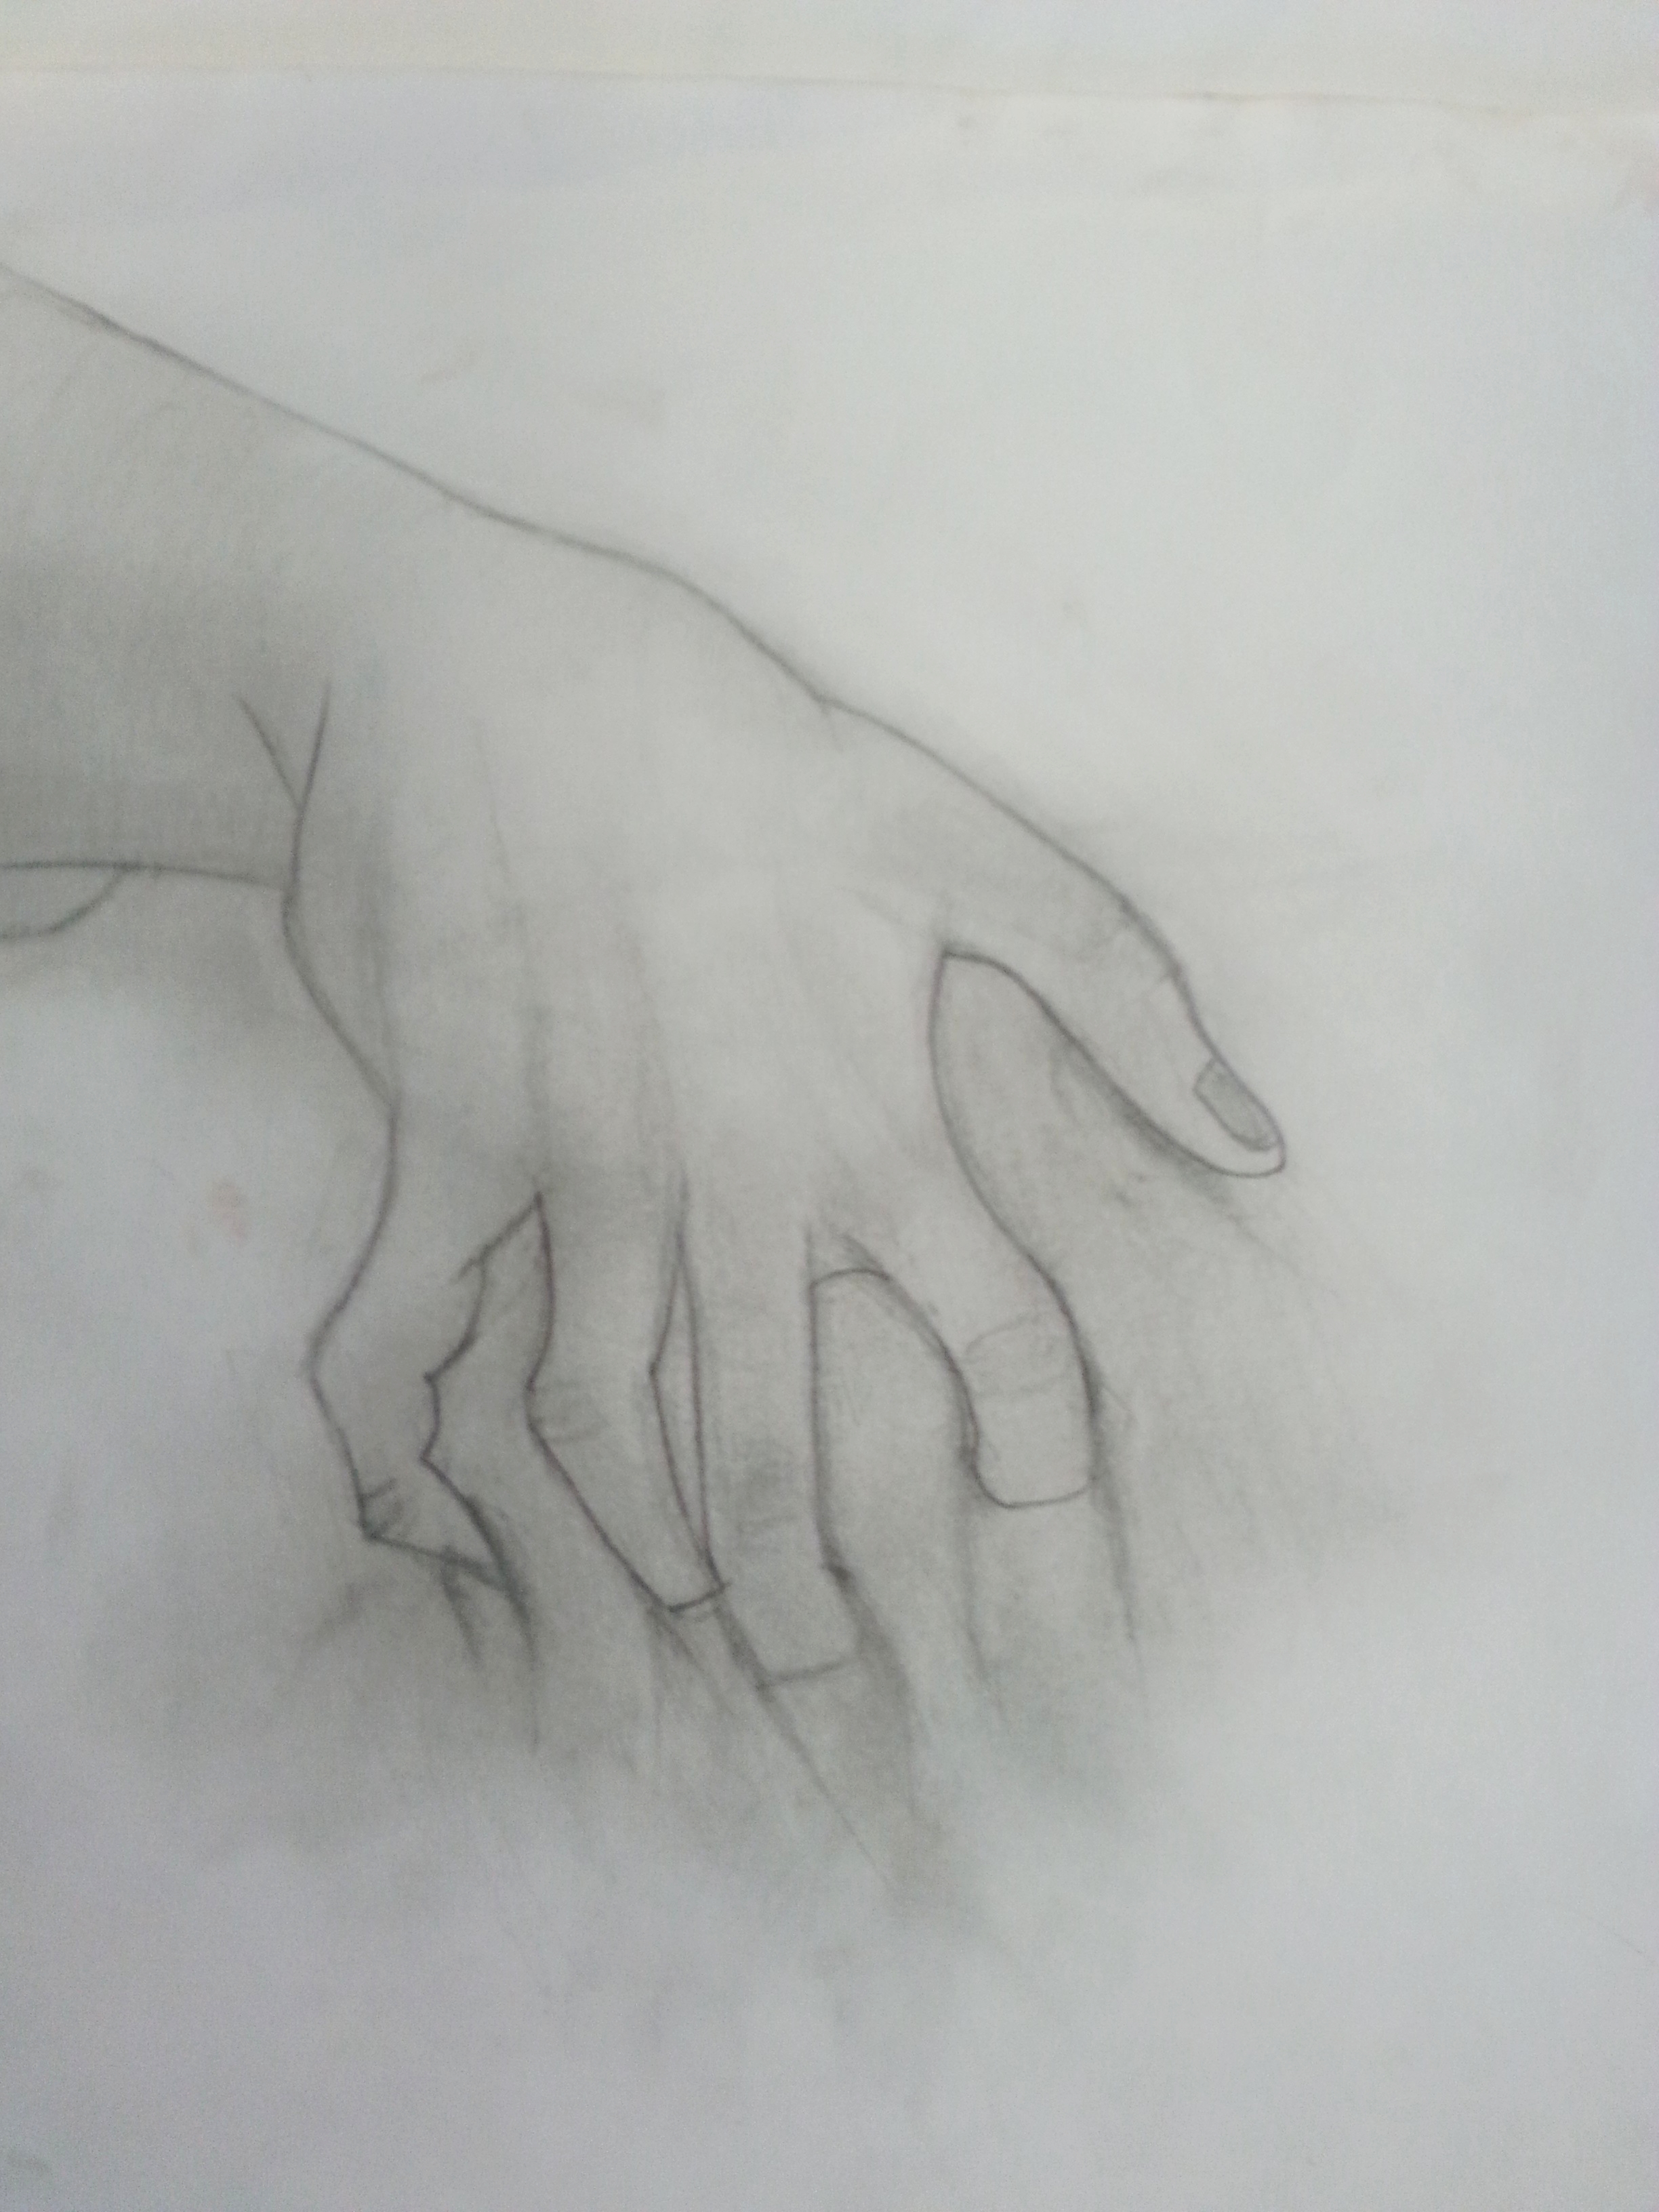 Hand Morph_Drawing.jpg